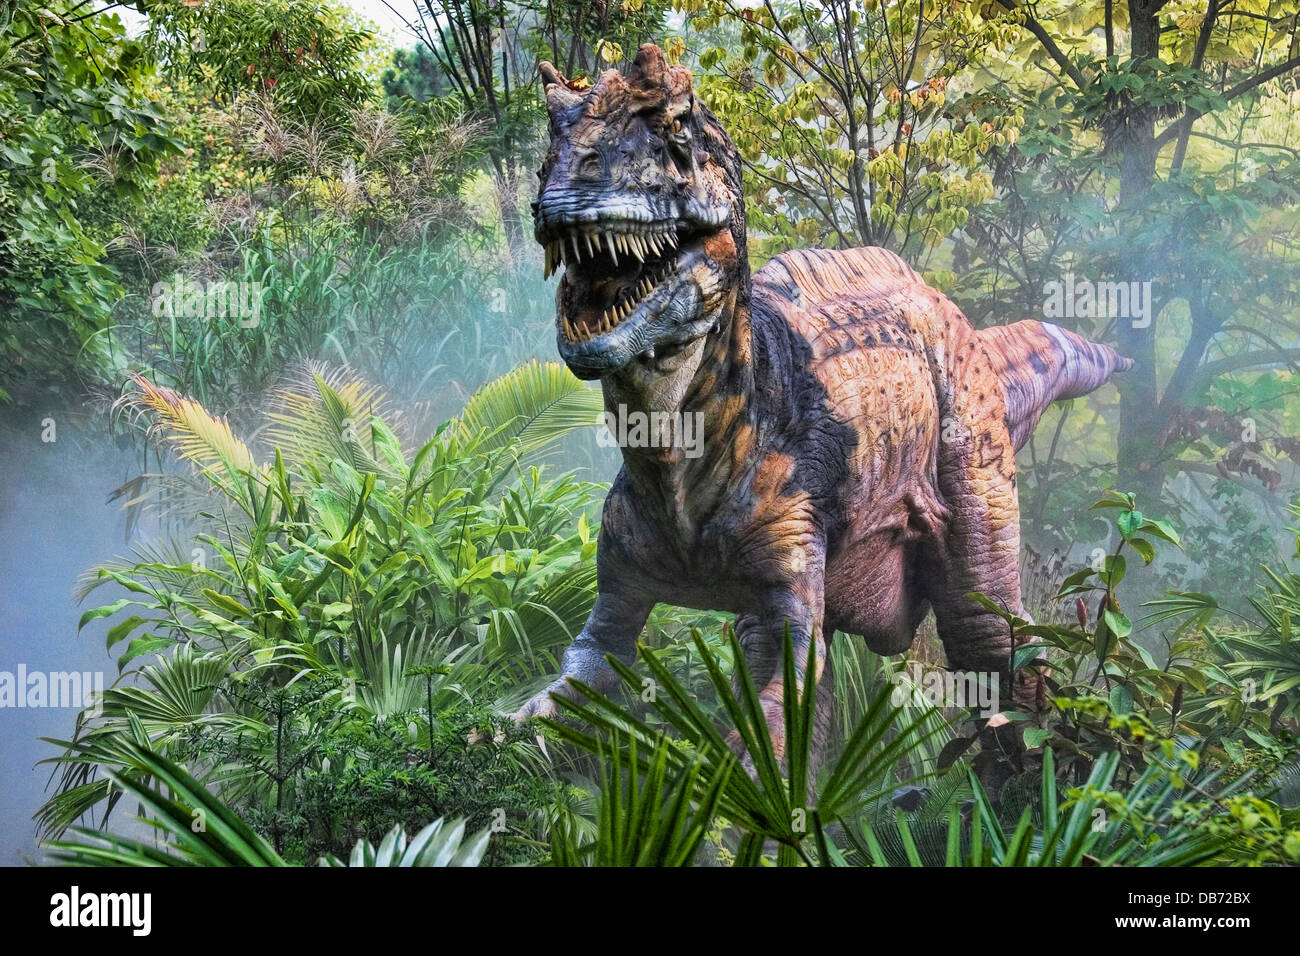 Metriacanthosaurus (which means 'moderately spined') dinosaur from the late Jurassic period. - Stock Image